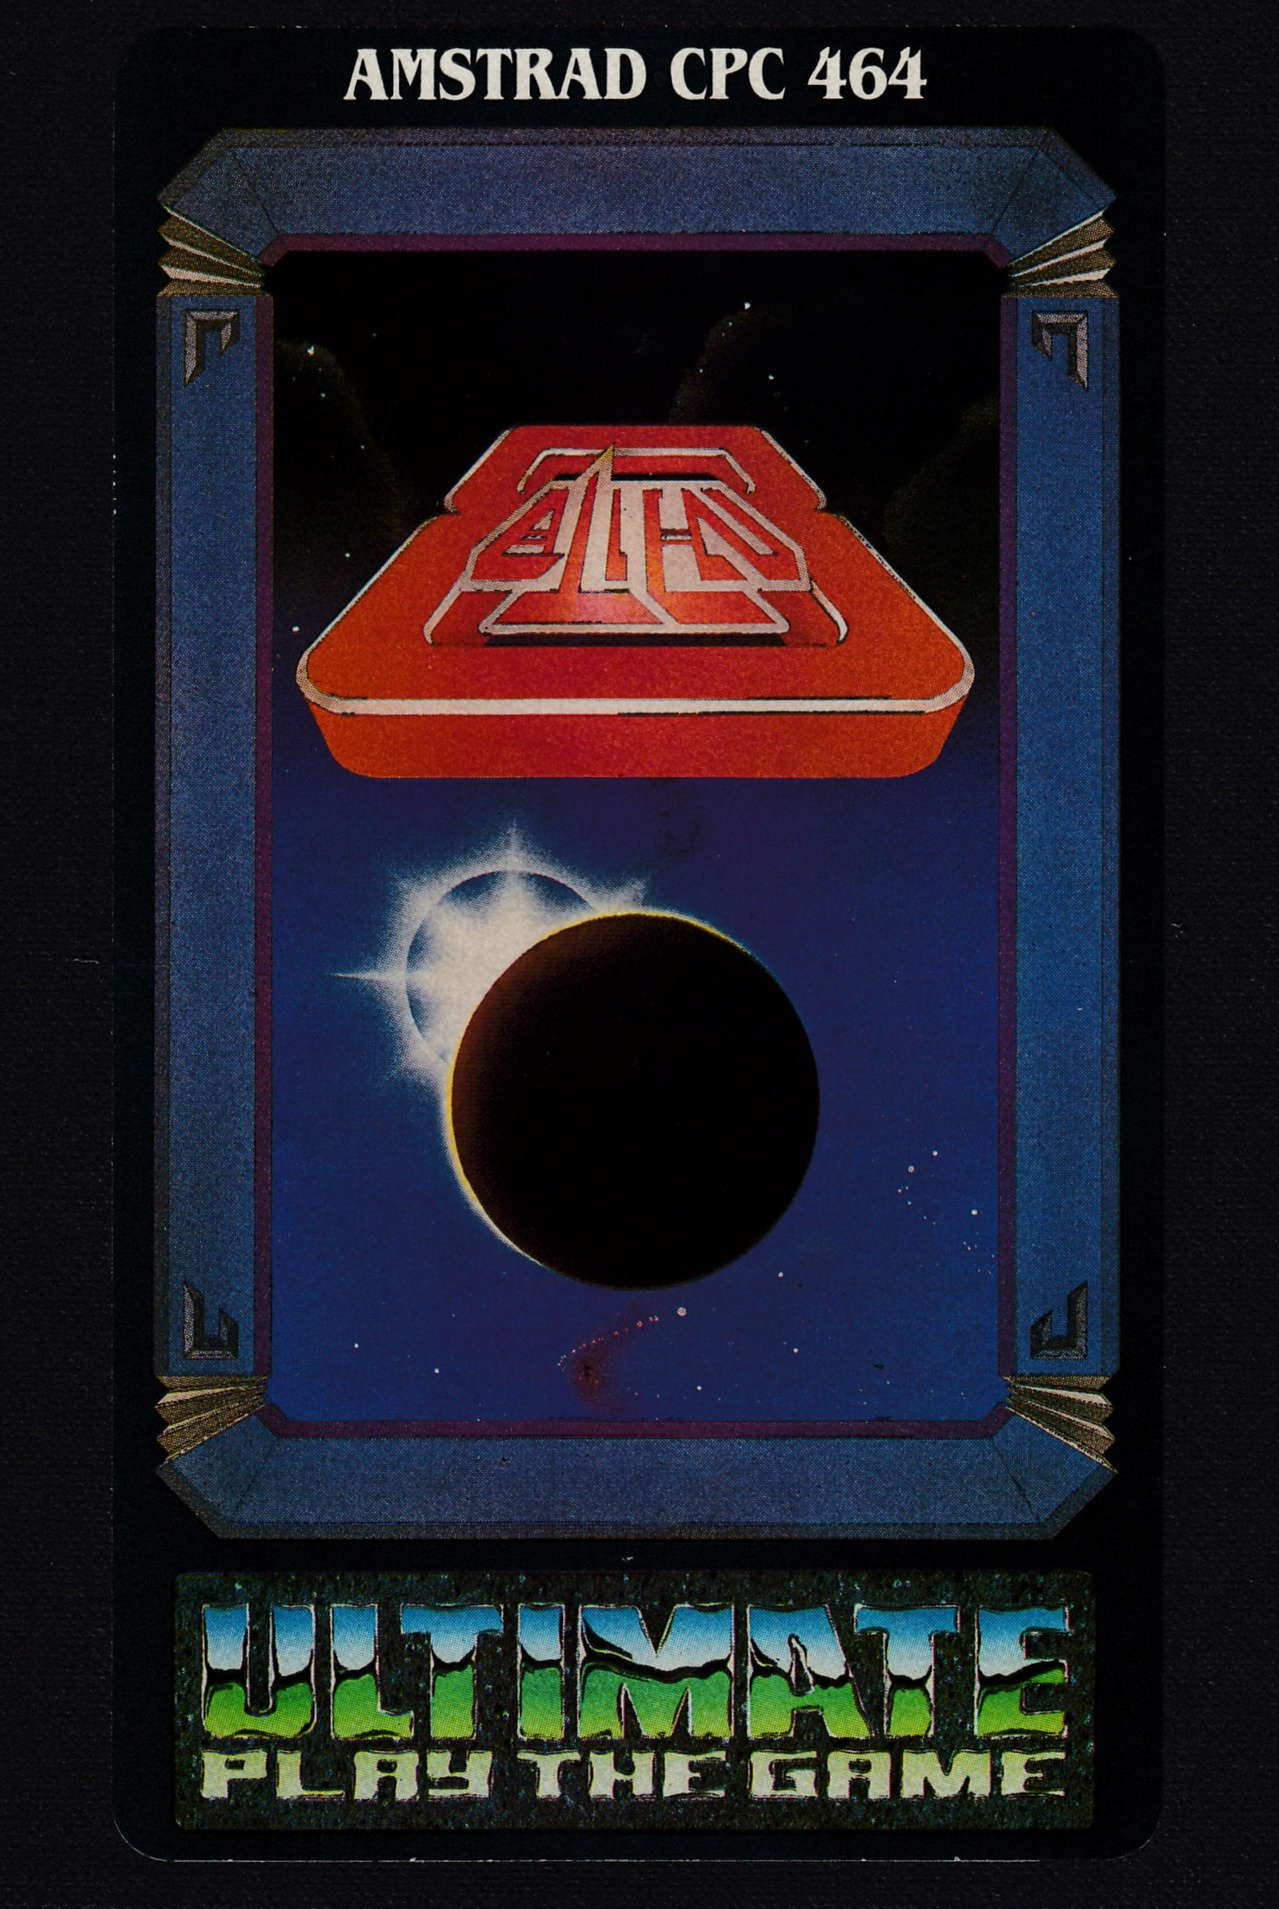 cover of the Amstrad CPC game Alien 8  by GameBase CPC